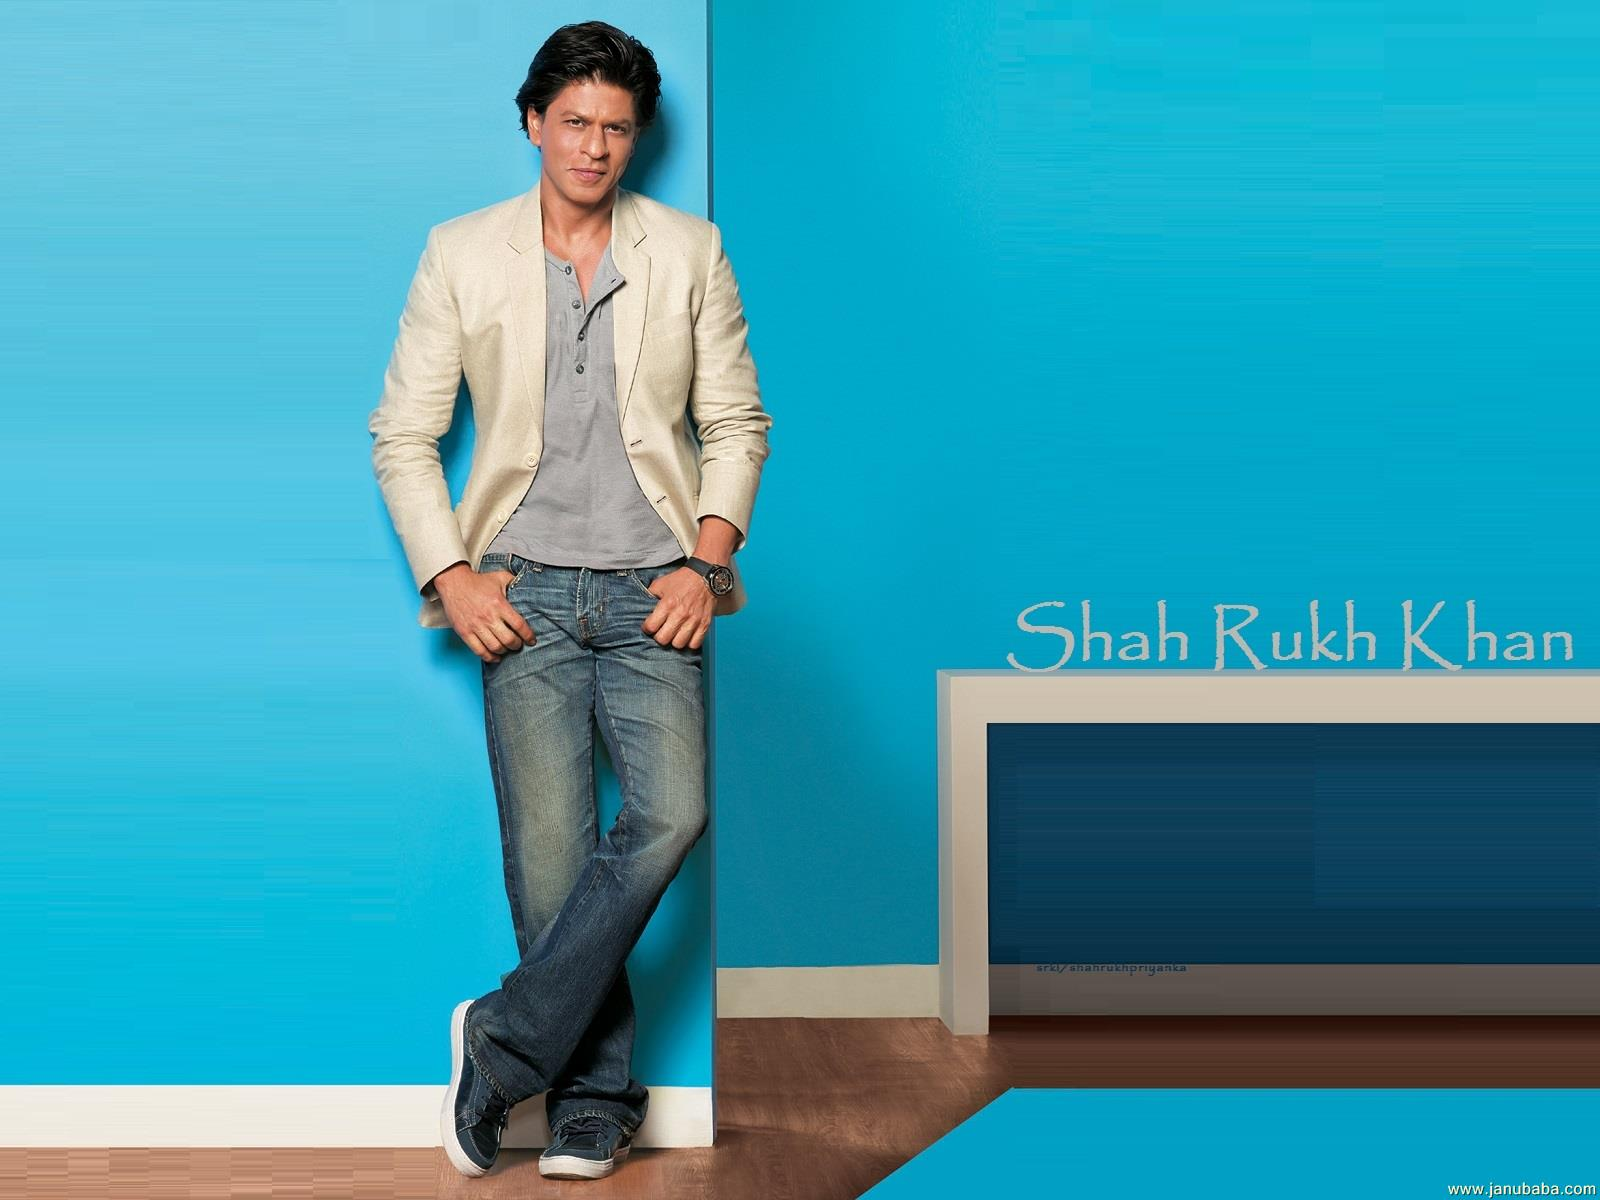 shah rukh khan images, hd wallpapers, and photos - bollywood hungama